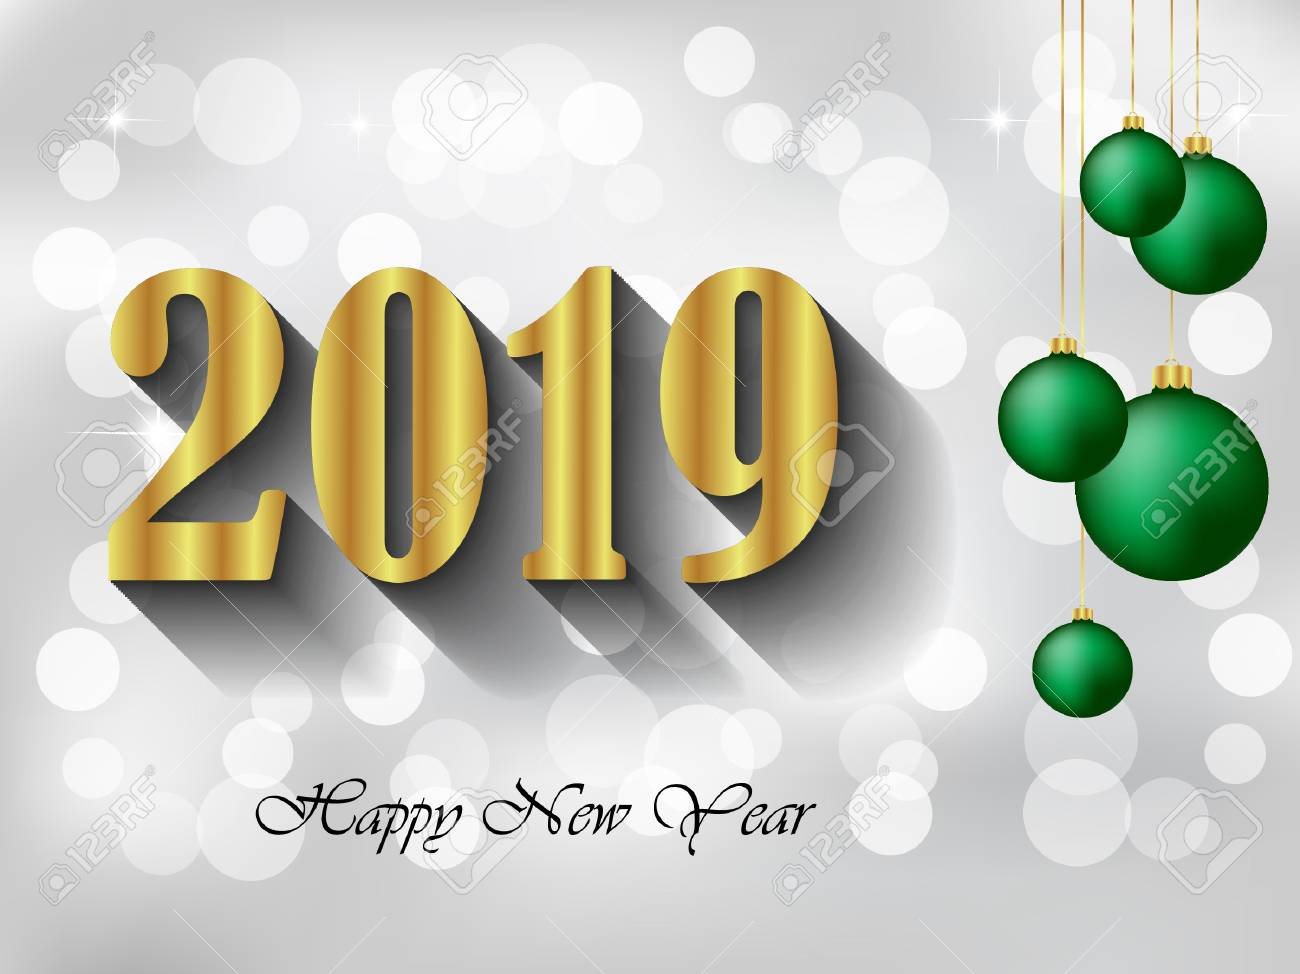 2019 Happy New Year Background For Your Invitations Festive Posters